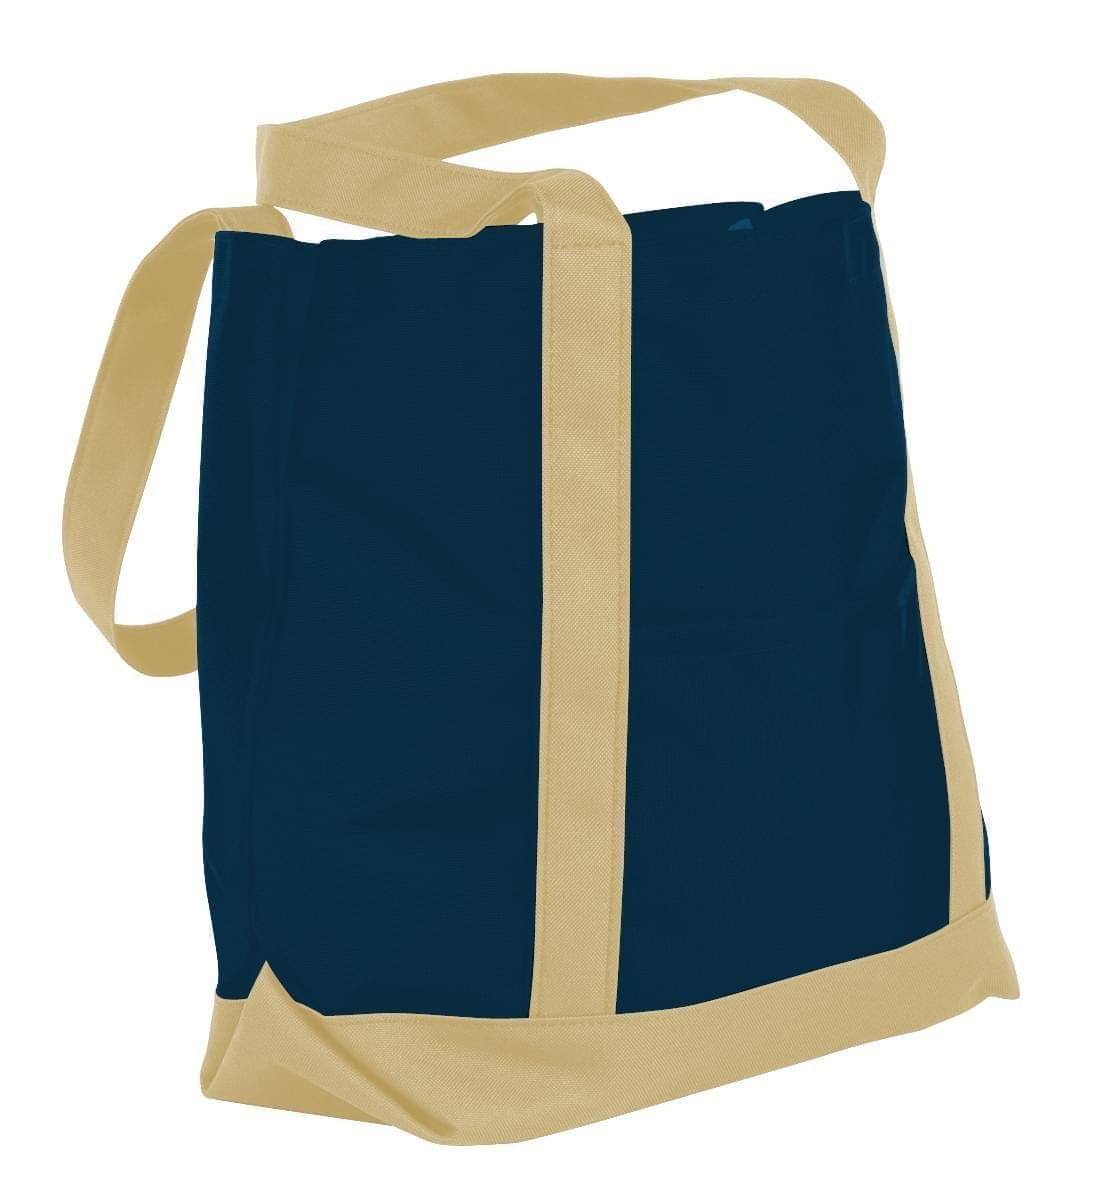 USA Made Canvas Fashion Tote Bags, Navy-Khaki, XAACL1UACX